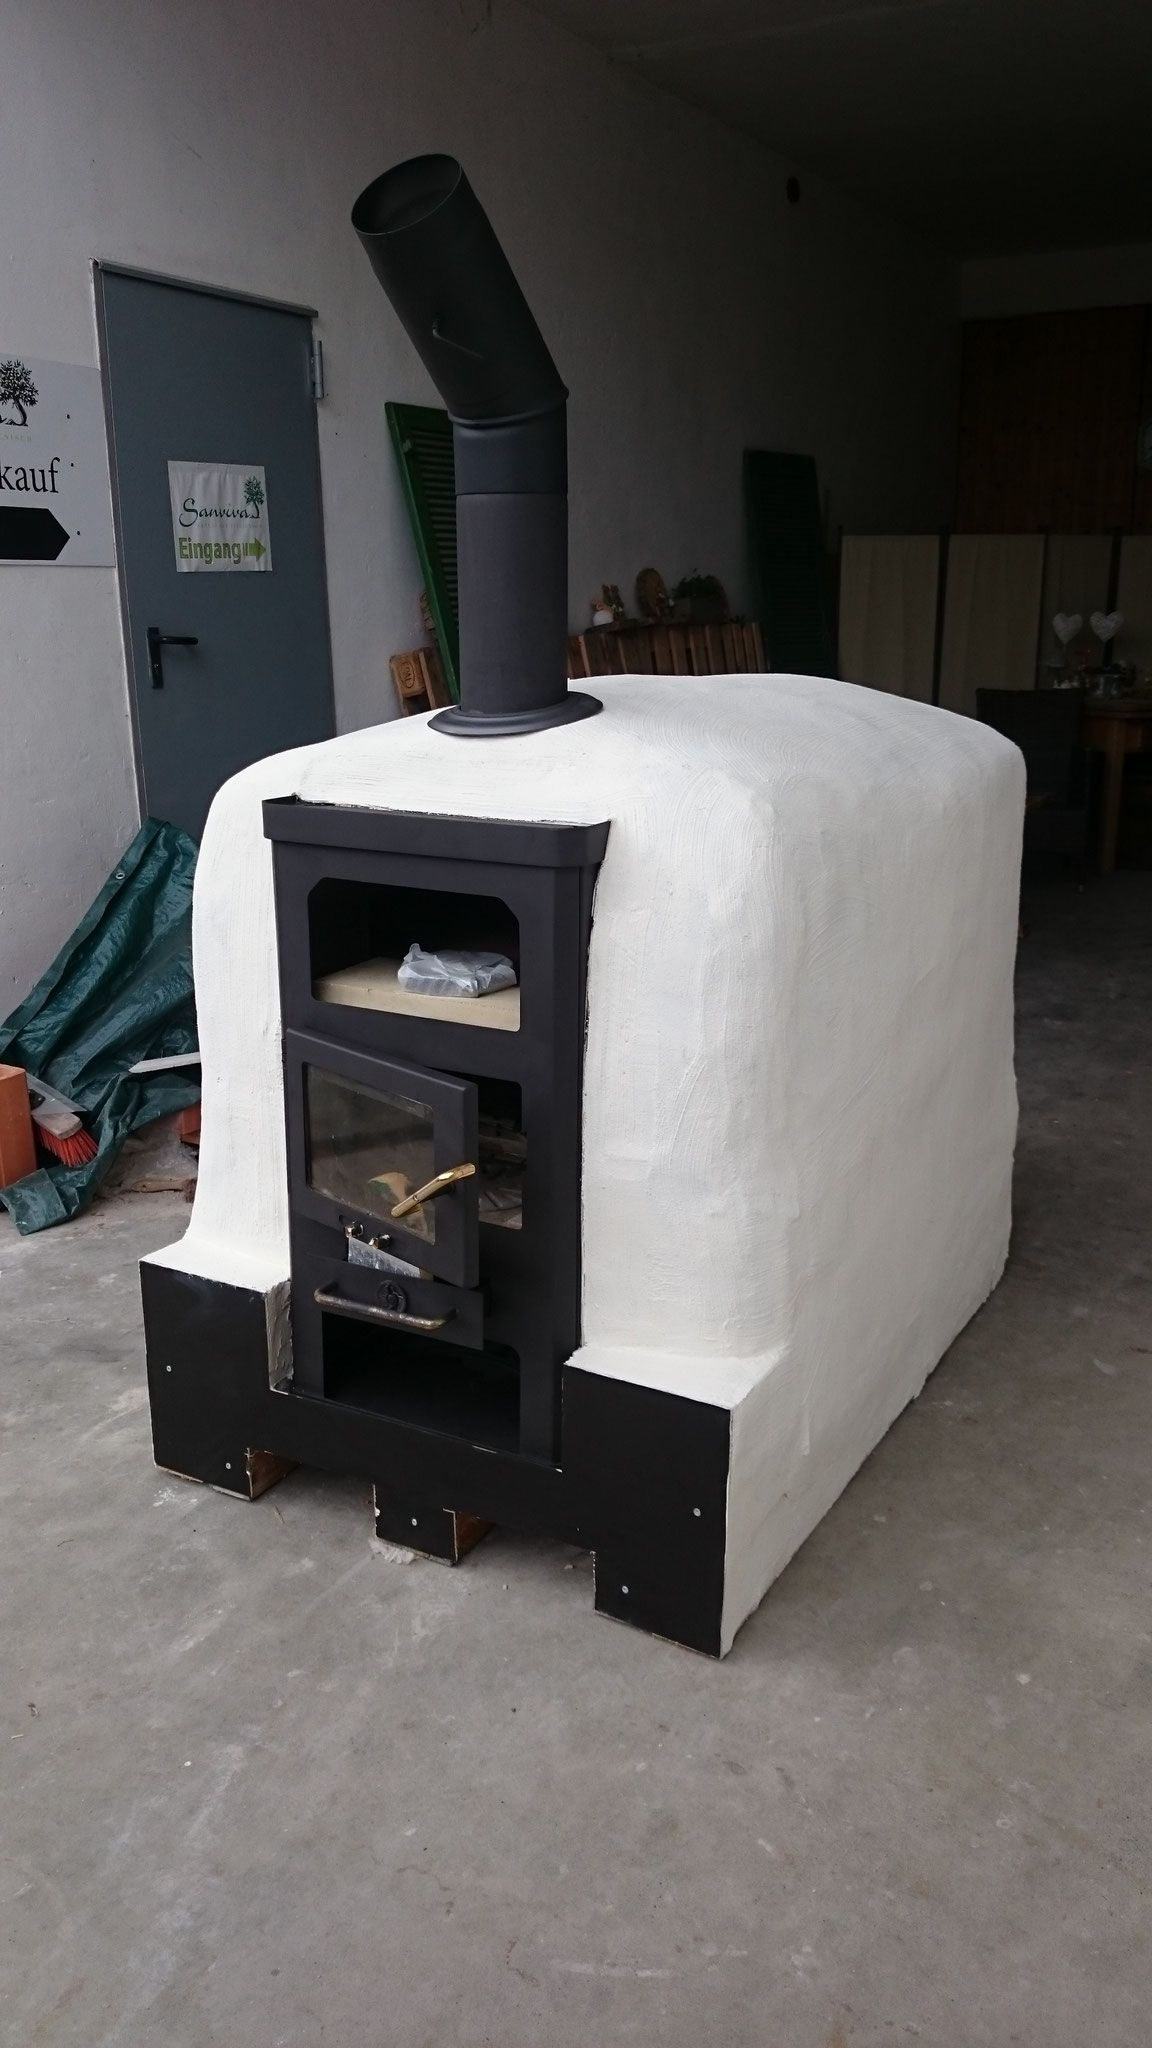 Upcycling Diy Pizza Oven Outdoor Oven Wood Oven Steinbackofen Pizzaofen Fire Place Garden Living Pizza Oven Steinbackofen Kellerdecke Aussenkamin